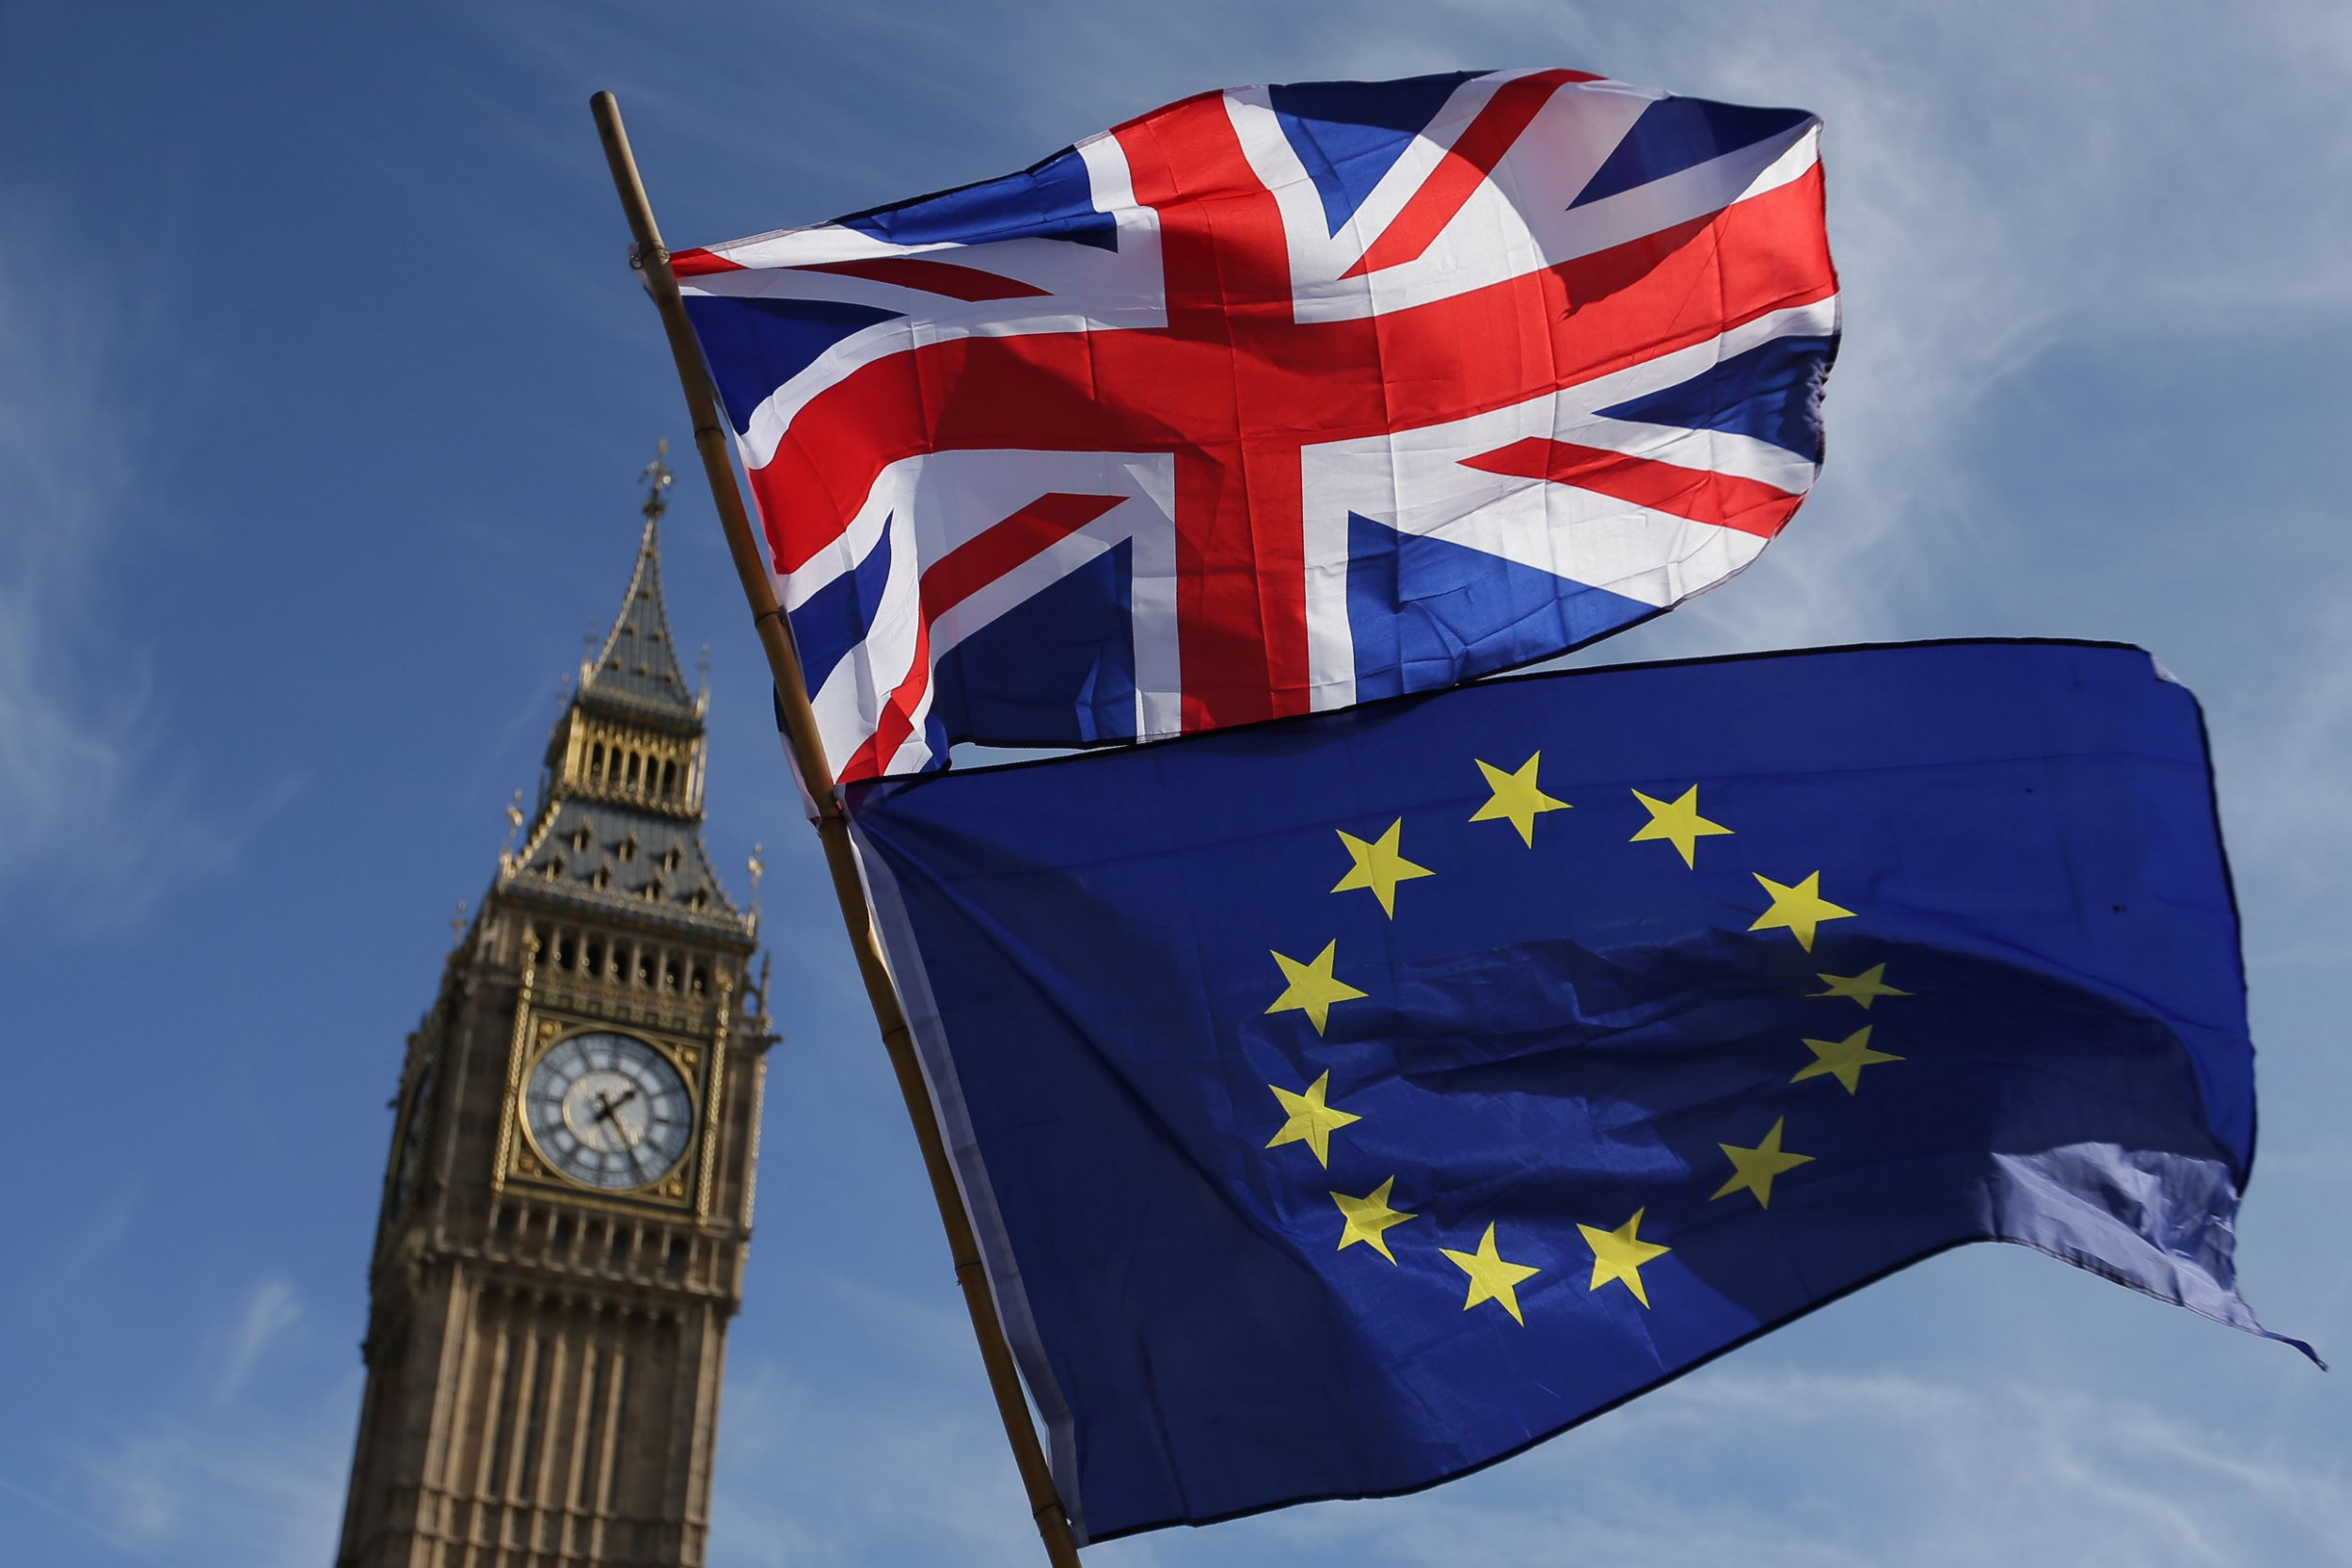 (FILES) In this file photo taken on March 25, 2017 An EU flag and a Union flag held by a demonstrator is seen with Elizabeth Tower (Big Ben) and the Houses of Parliament as marchers taking part in an anti-Brexit, pro-European Union (EU) enter Parliament Square in central London on March 25, 2017, ahead of the British government's planned triggering of Article 50 next week. - Britain's battle over Brexit resumes on January 7, 2019 when parliament returns from its Christmas break to debate and -- most likely -- defeat Prime Minister Theresa May's unpopular EU divorce deal. (Photo by Daniel LEAL-OLIVAS / AFP)DANIEL LEAL-OLIVAS/AFP/Getty Images